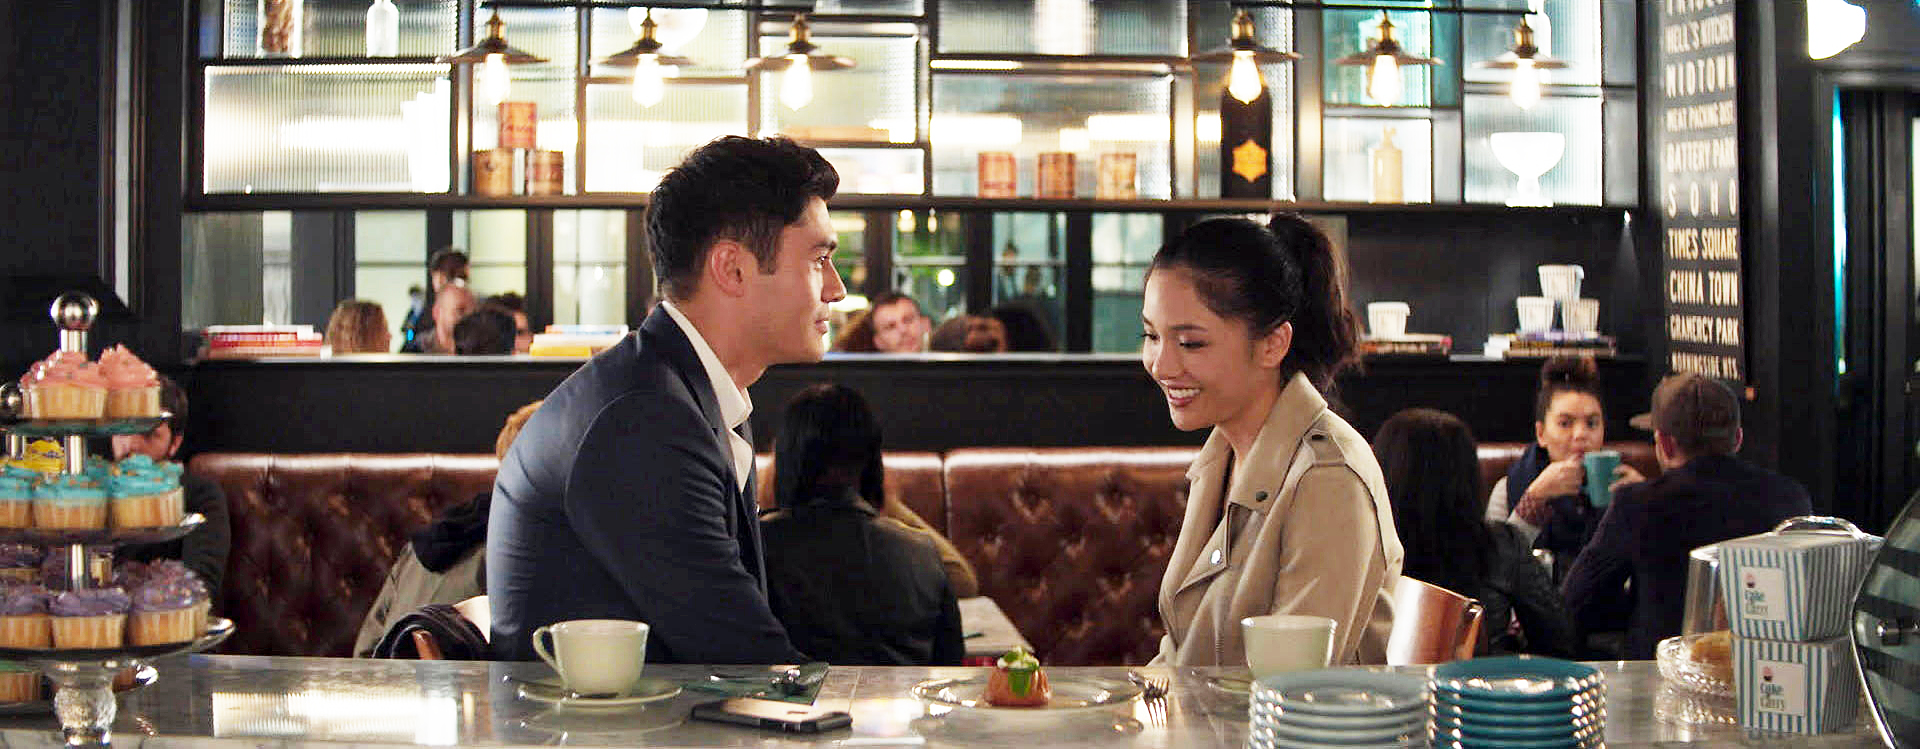 Chef Malcolm Lee Food Crazy Rich Asians